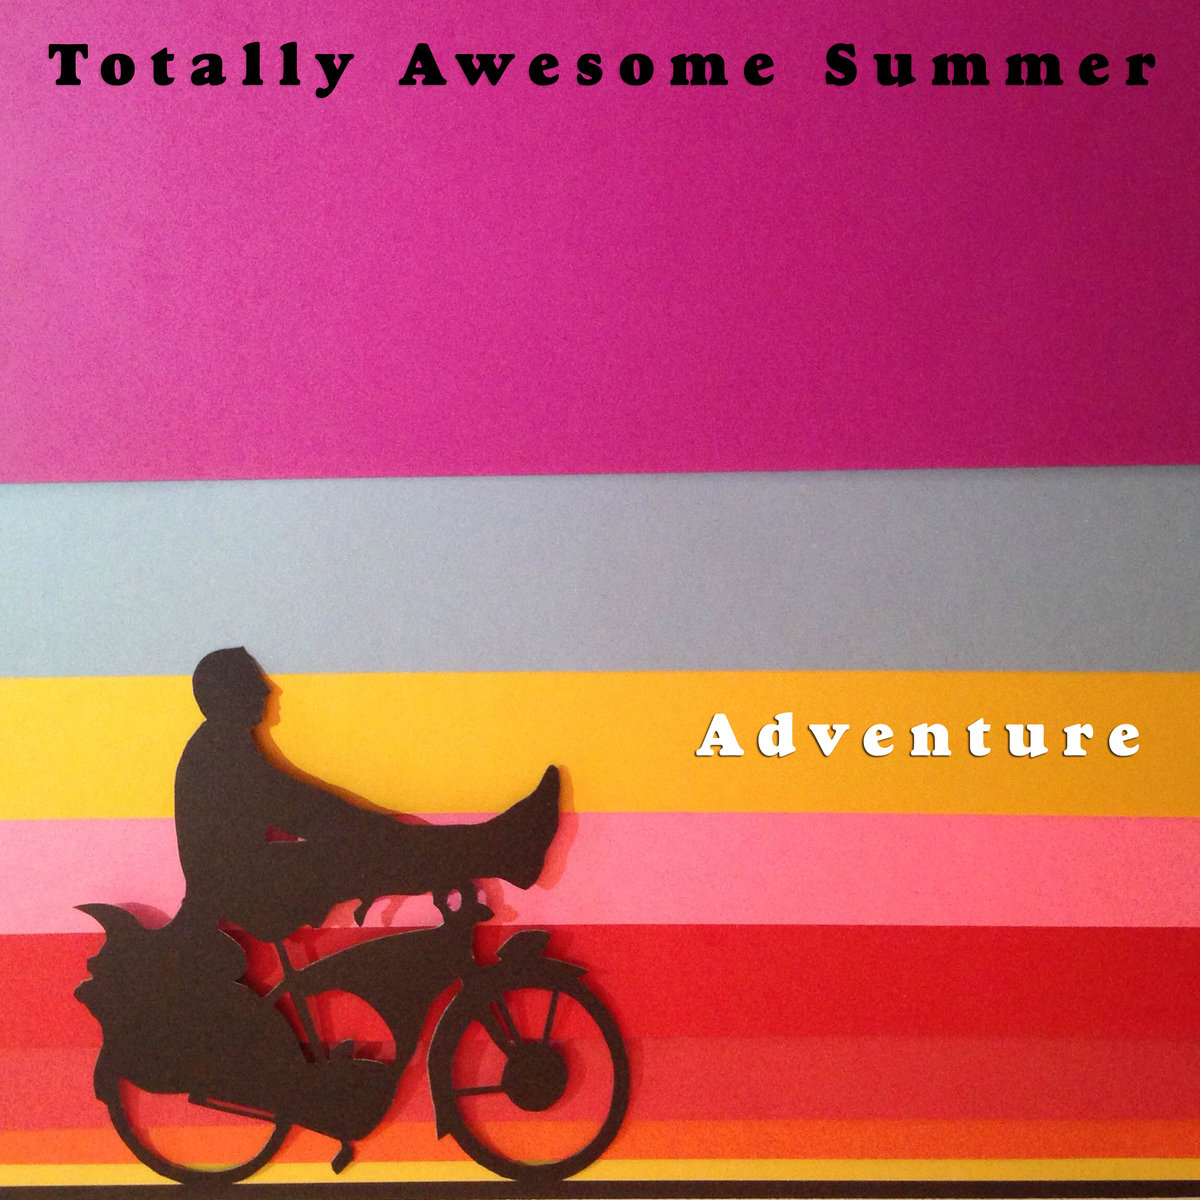 Totally Awesome Summer - Adventure.jpg